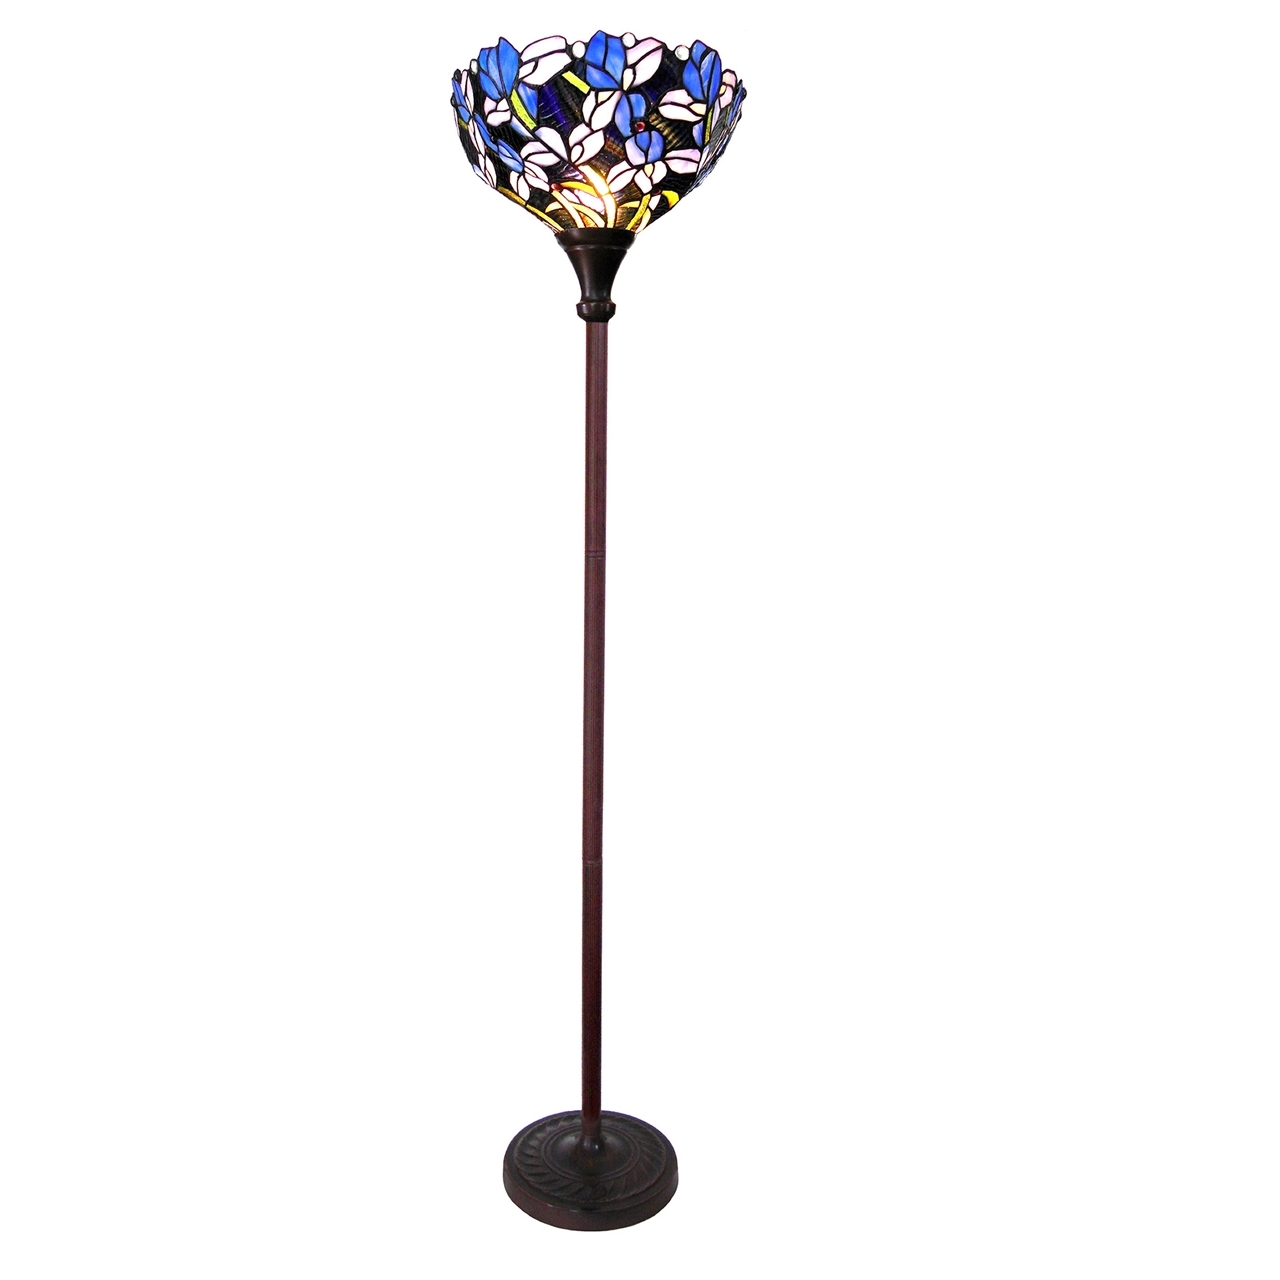 Image of: Chloe Lighting Inc Tiffany Lamp Tiffany Lamps Tiffany Style Lamp Tiffany Style Lamps Victorian Lamp Tiffany Lamp Wholesale Tiffany Style Table Lamp